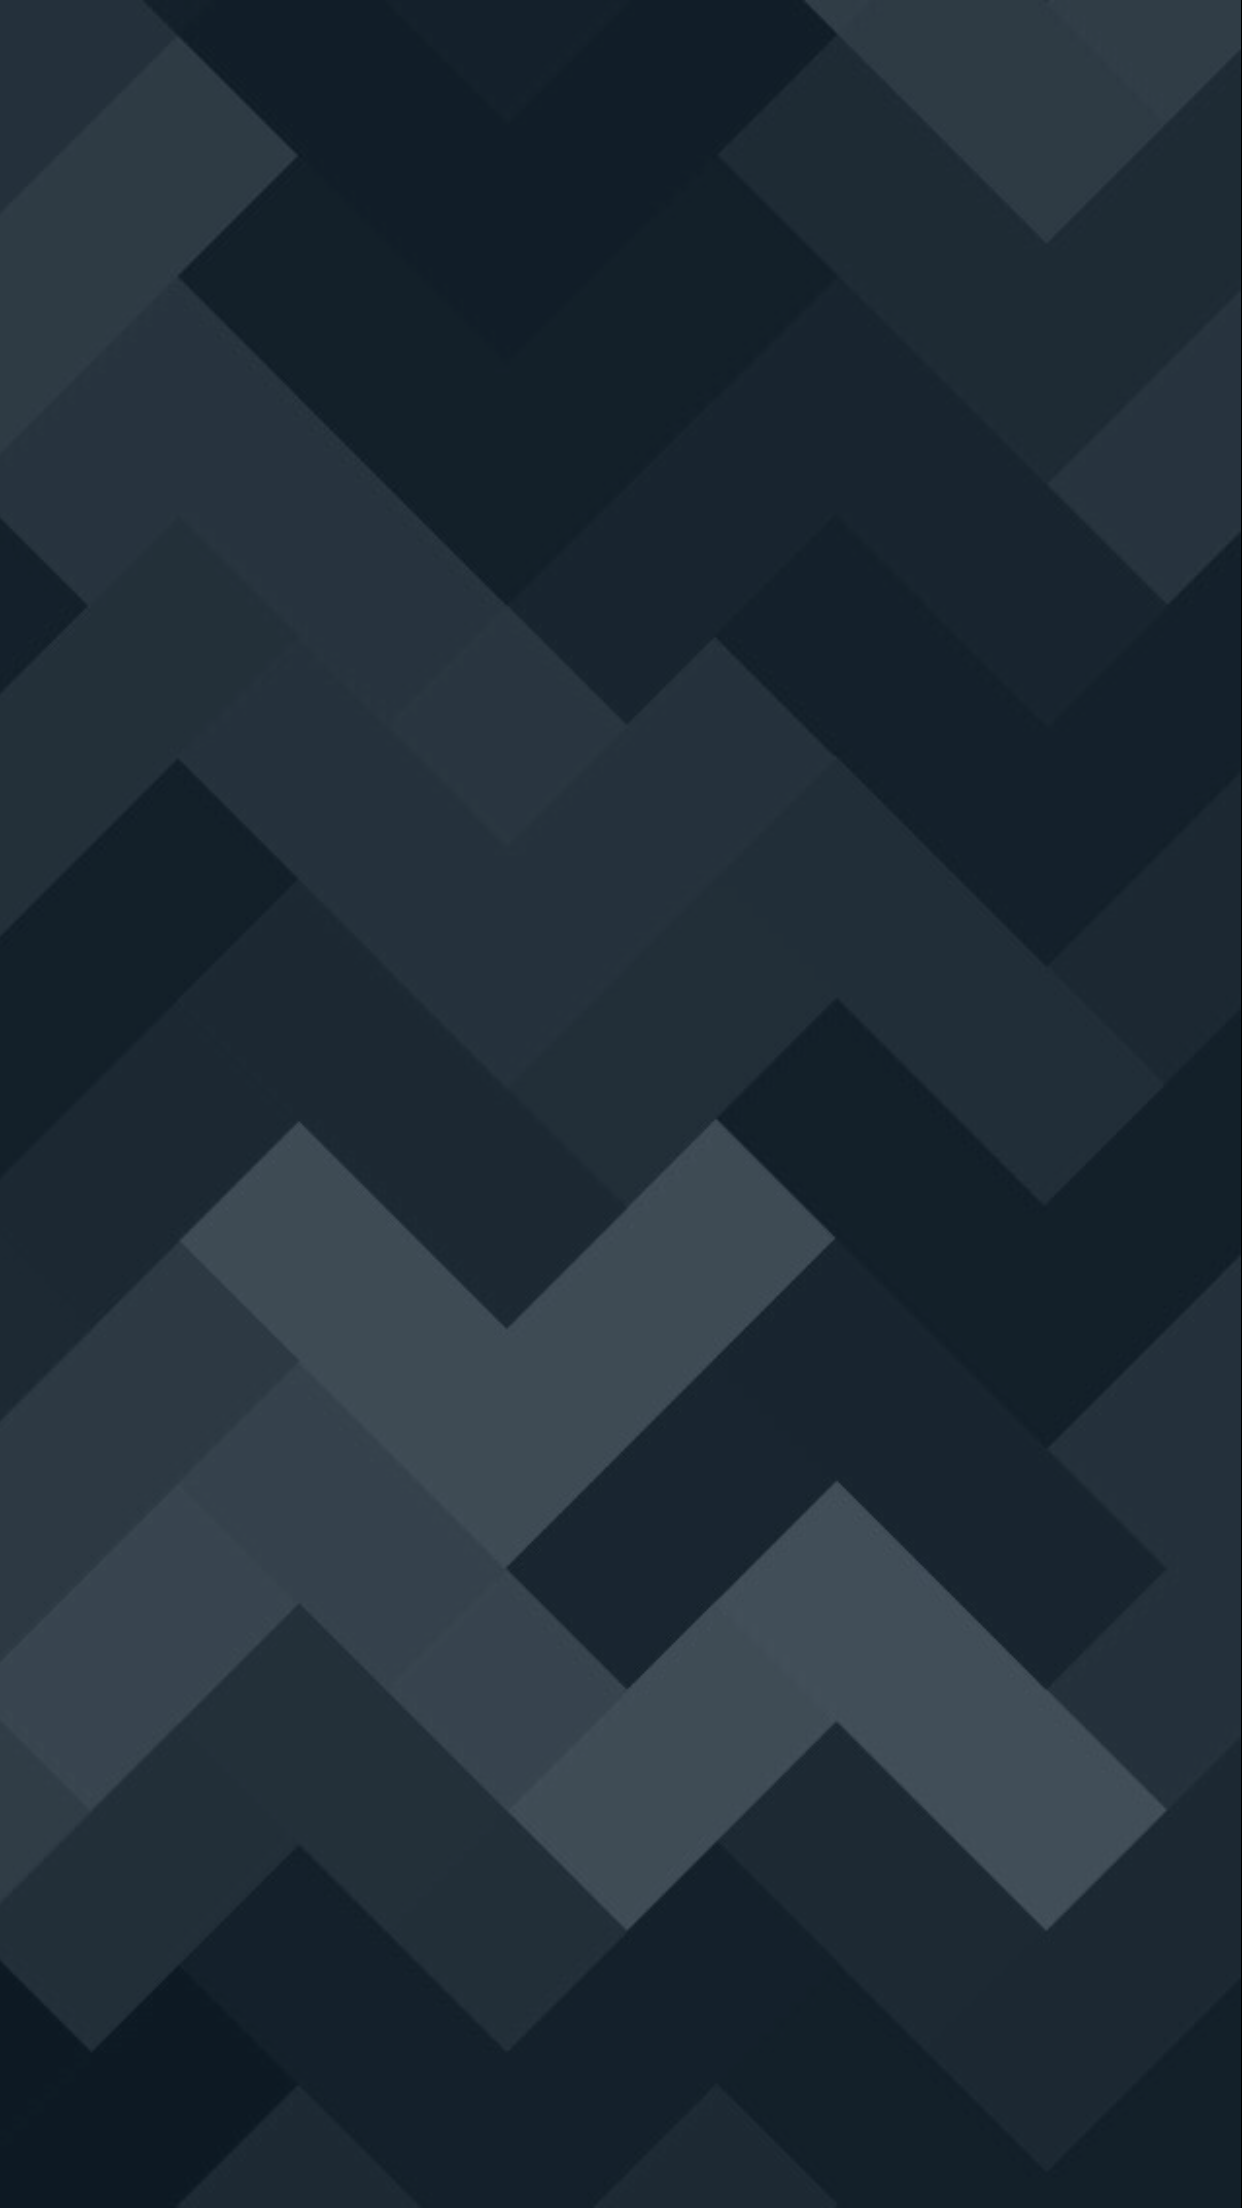 shape wallpaper phone beautiful collection of geometric